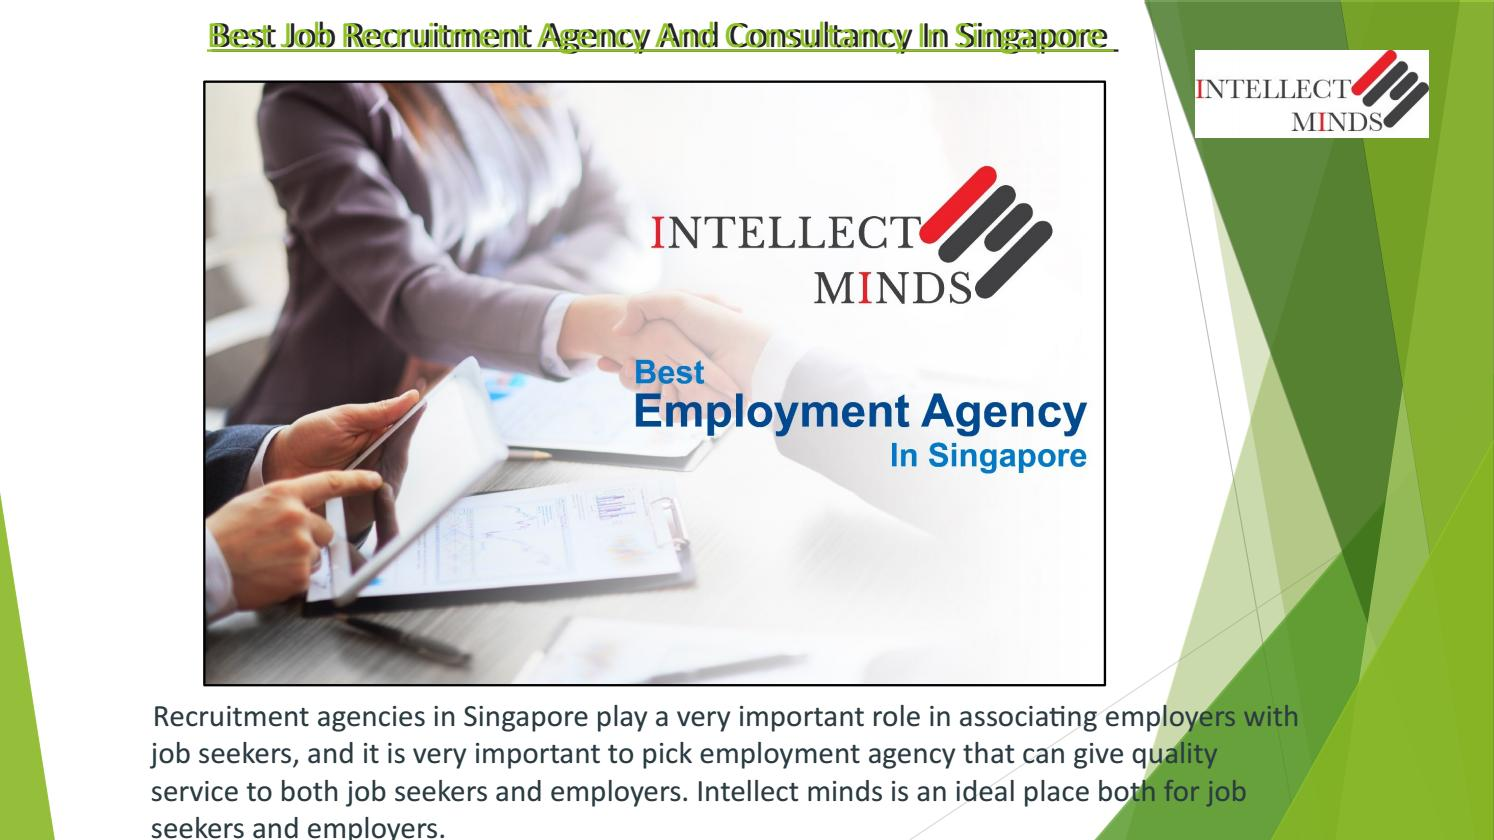 Job Recruitment Agency and Consultancy in Singapore by Intellect